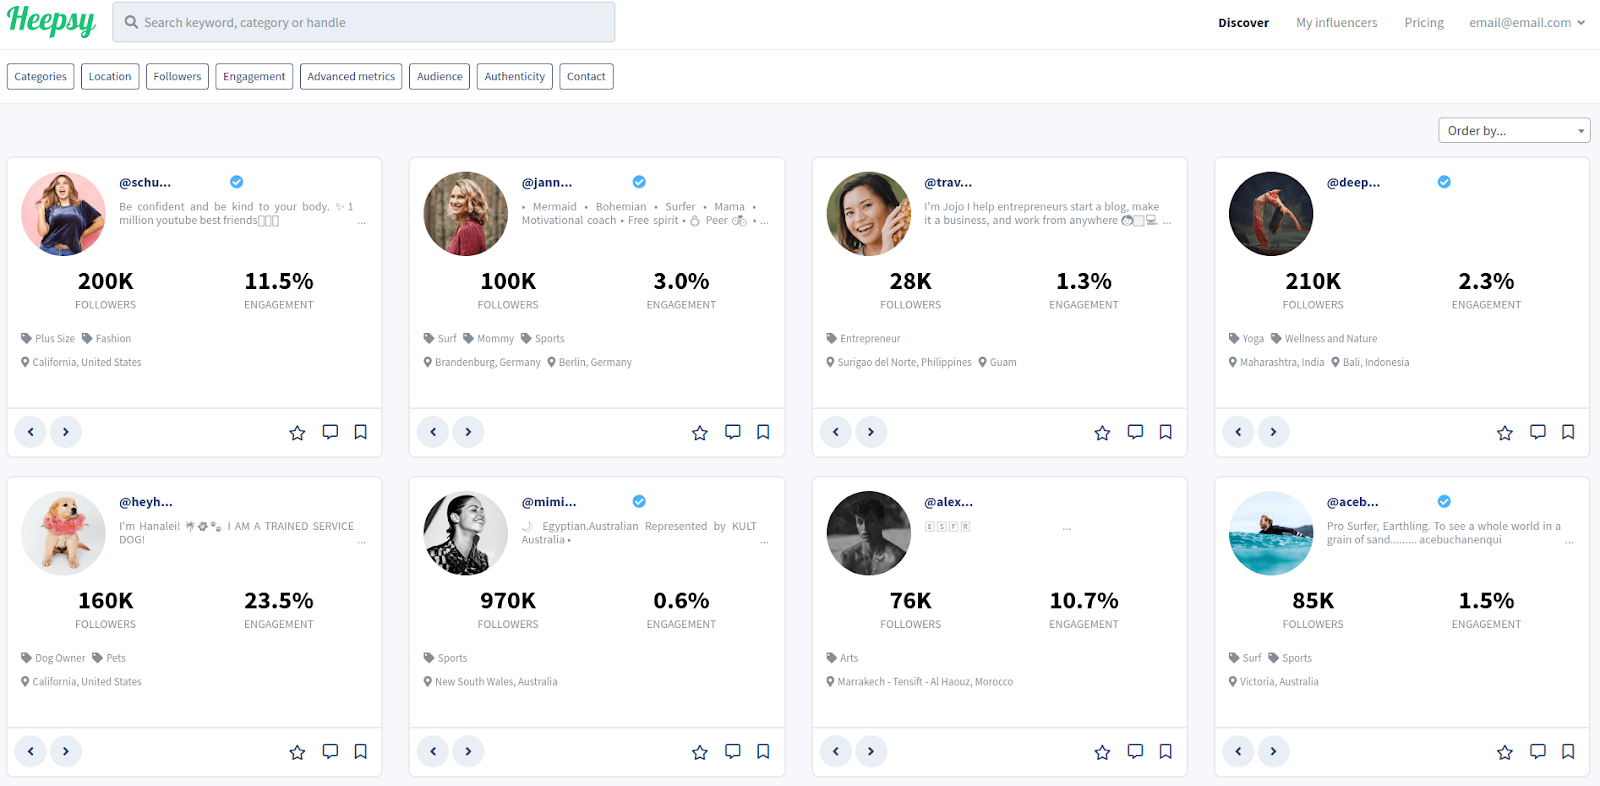 Heepsy - Tools to Find Influencers